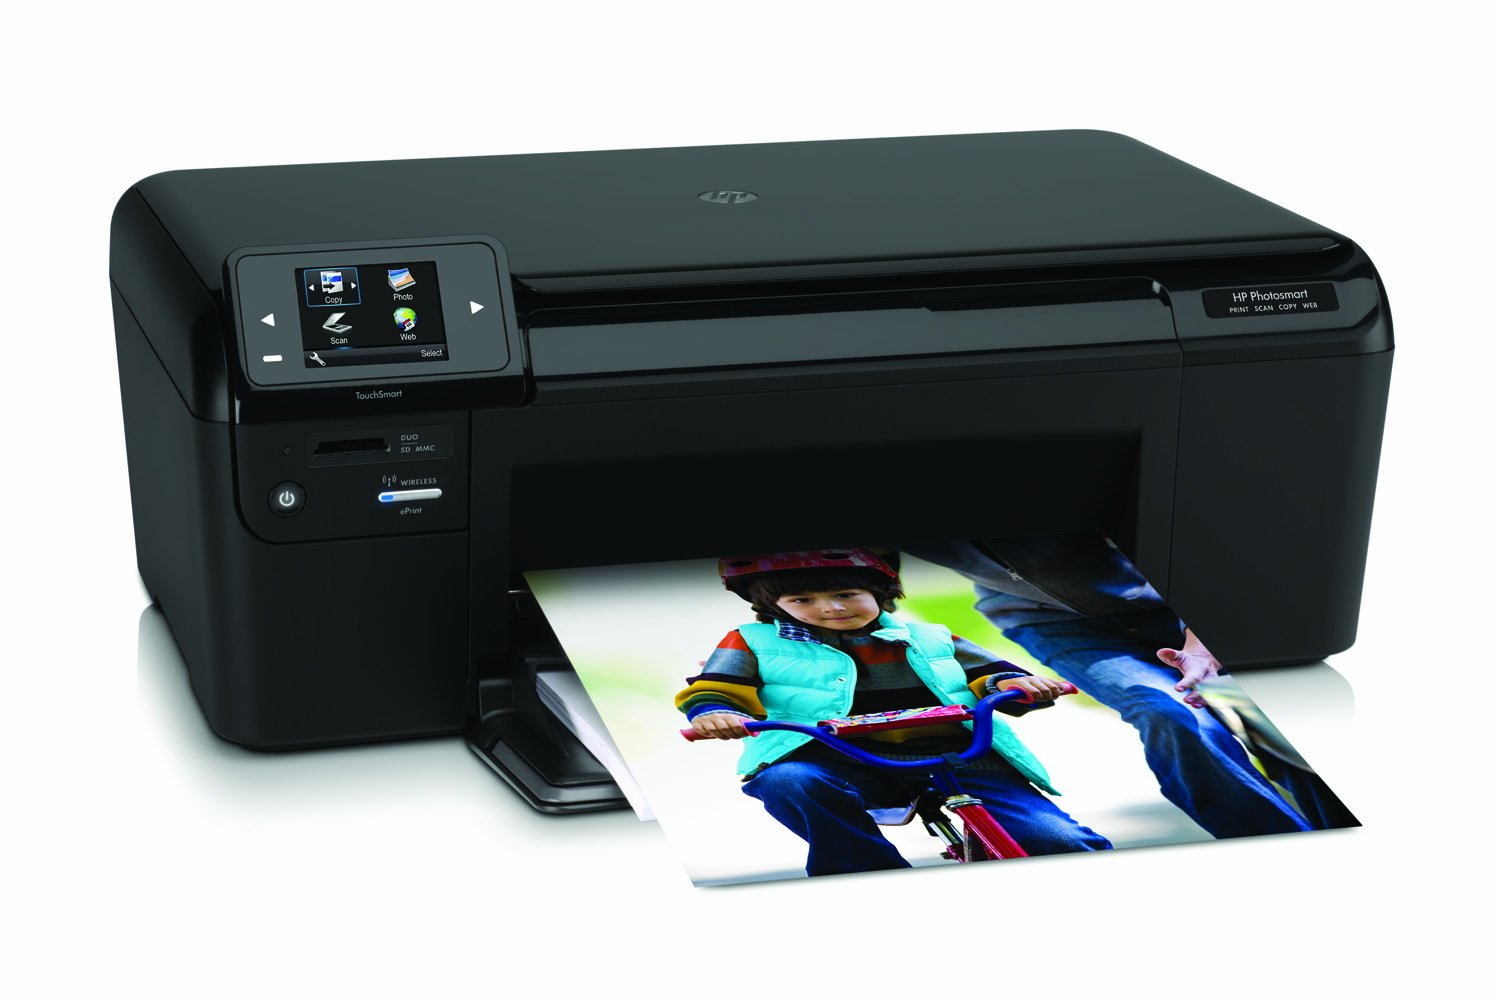 Page Yield - Inkjet LaserJet Printer Yields HP